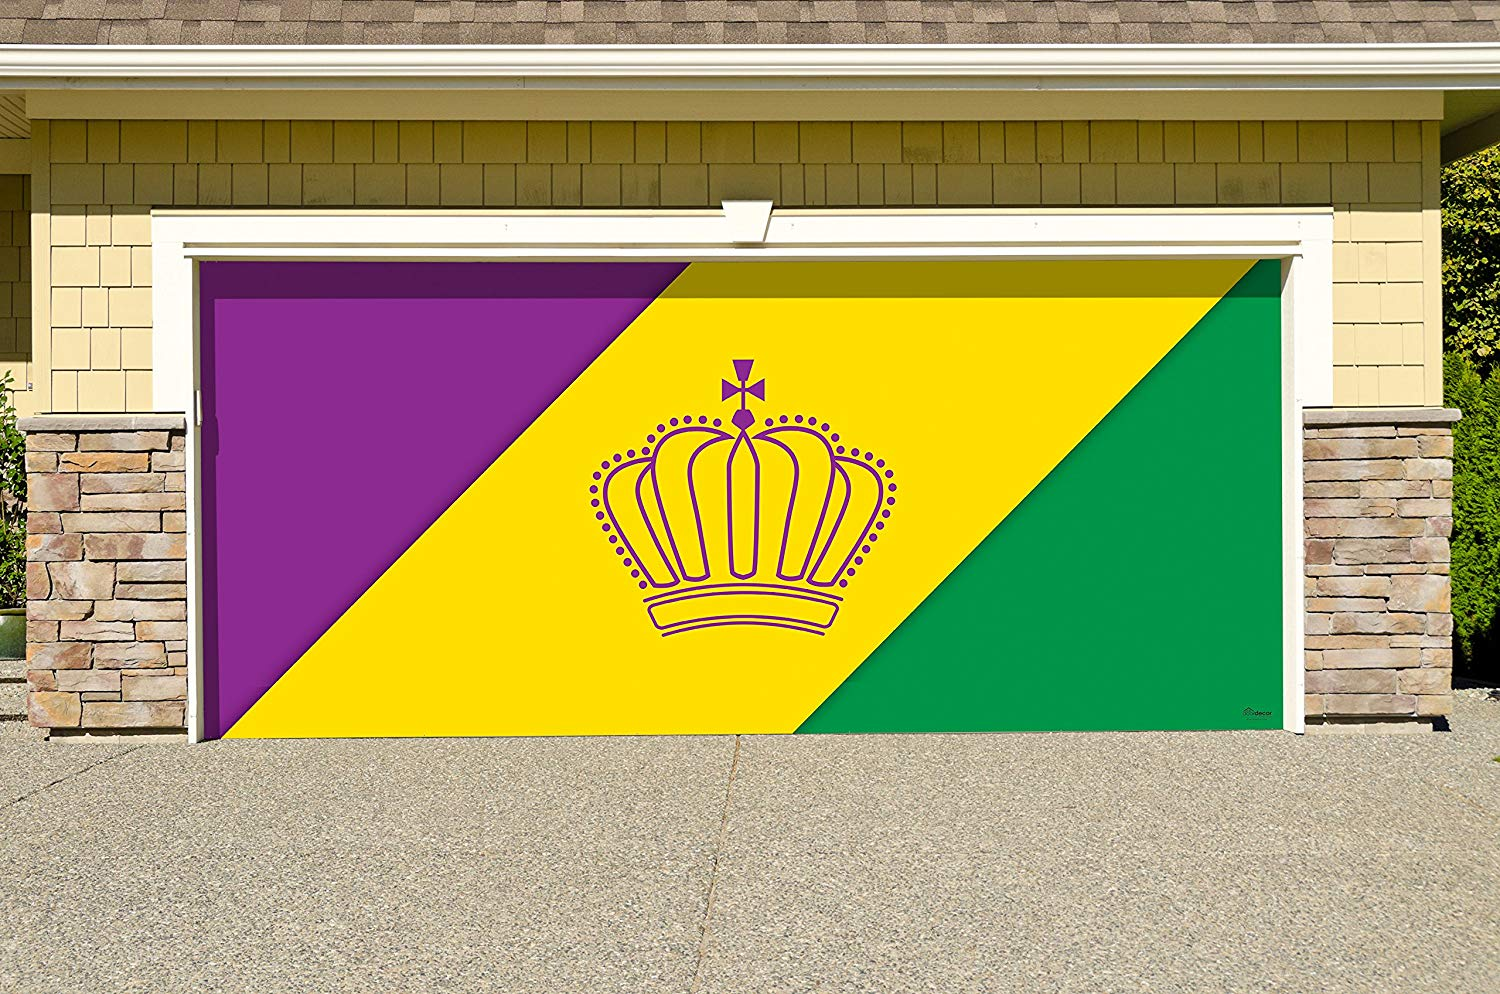 Victory Corps Outdoor Mardi Gras Decorations Garage Door Banner Cover Mural Décoration 7'x16' - Mardi Gras Diagonal Stripes - The Original Mardi Gras Supplies Holiday Garage Door Banner Decor